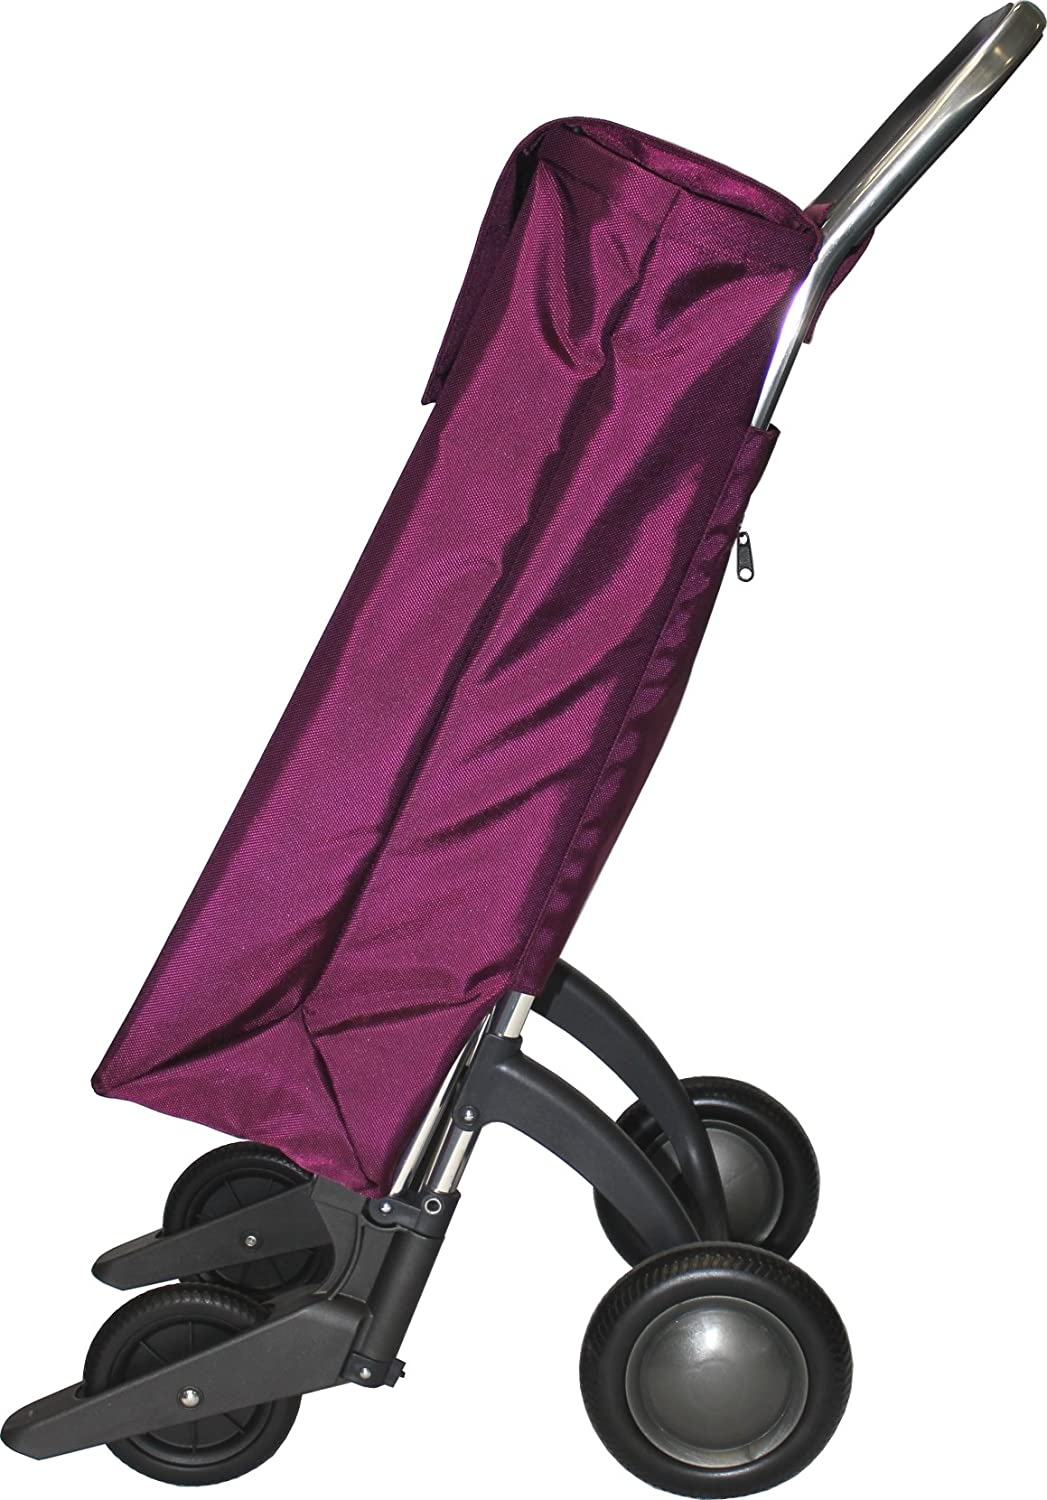 Amazon.com: ROLSER Quattre.2 Sbelta MF SBE001 Wheeled Shopping Bag Claret: Kitchen & Dining